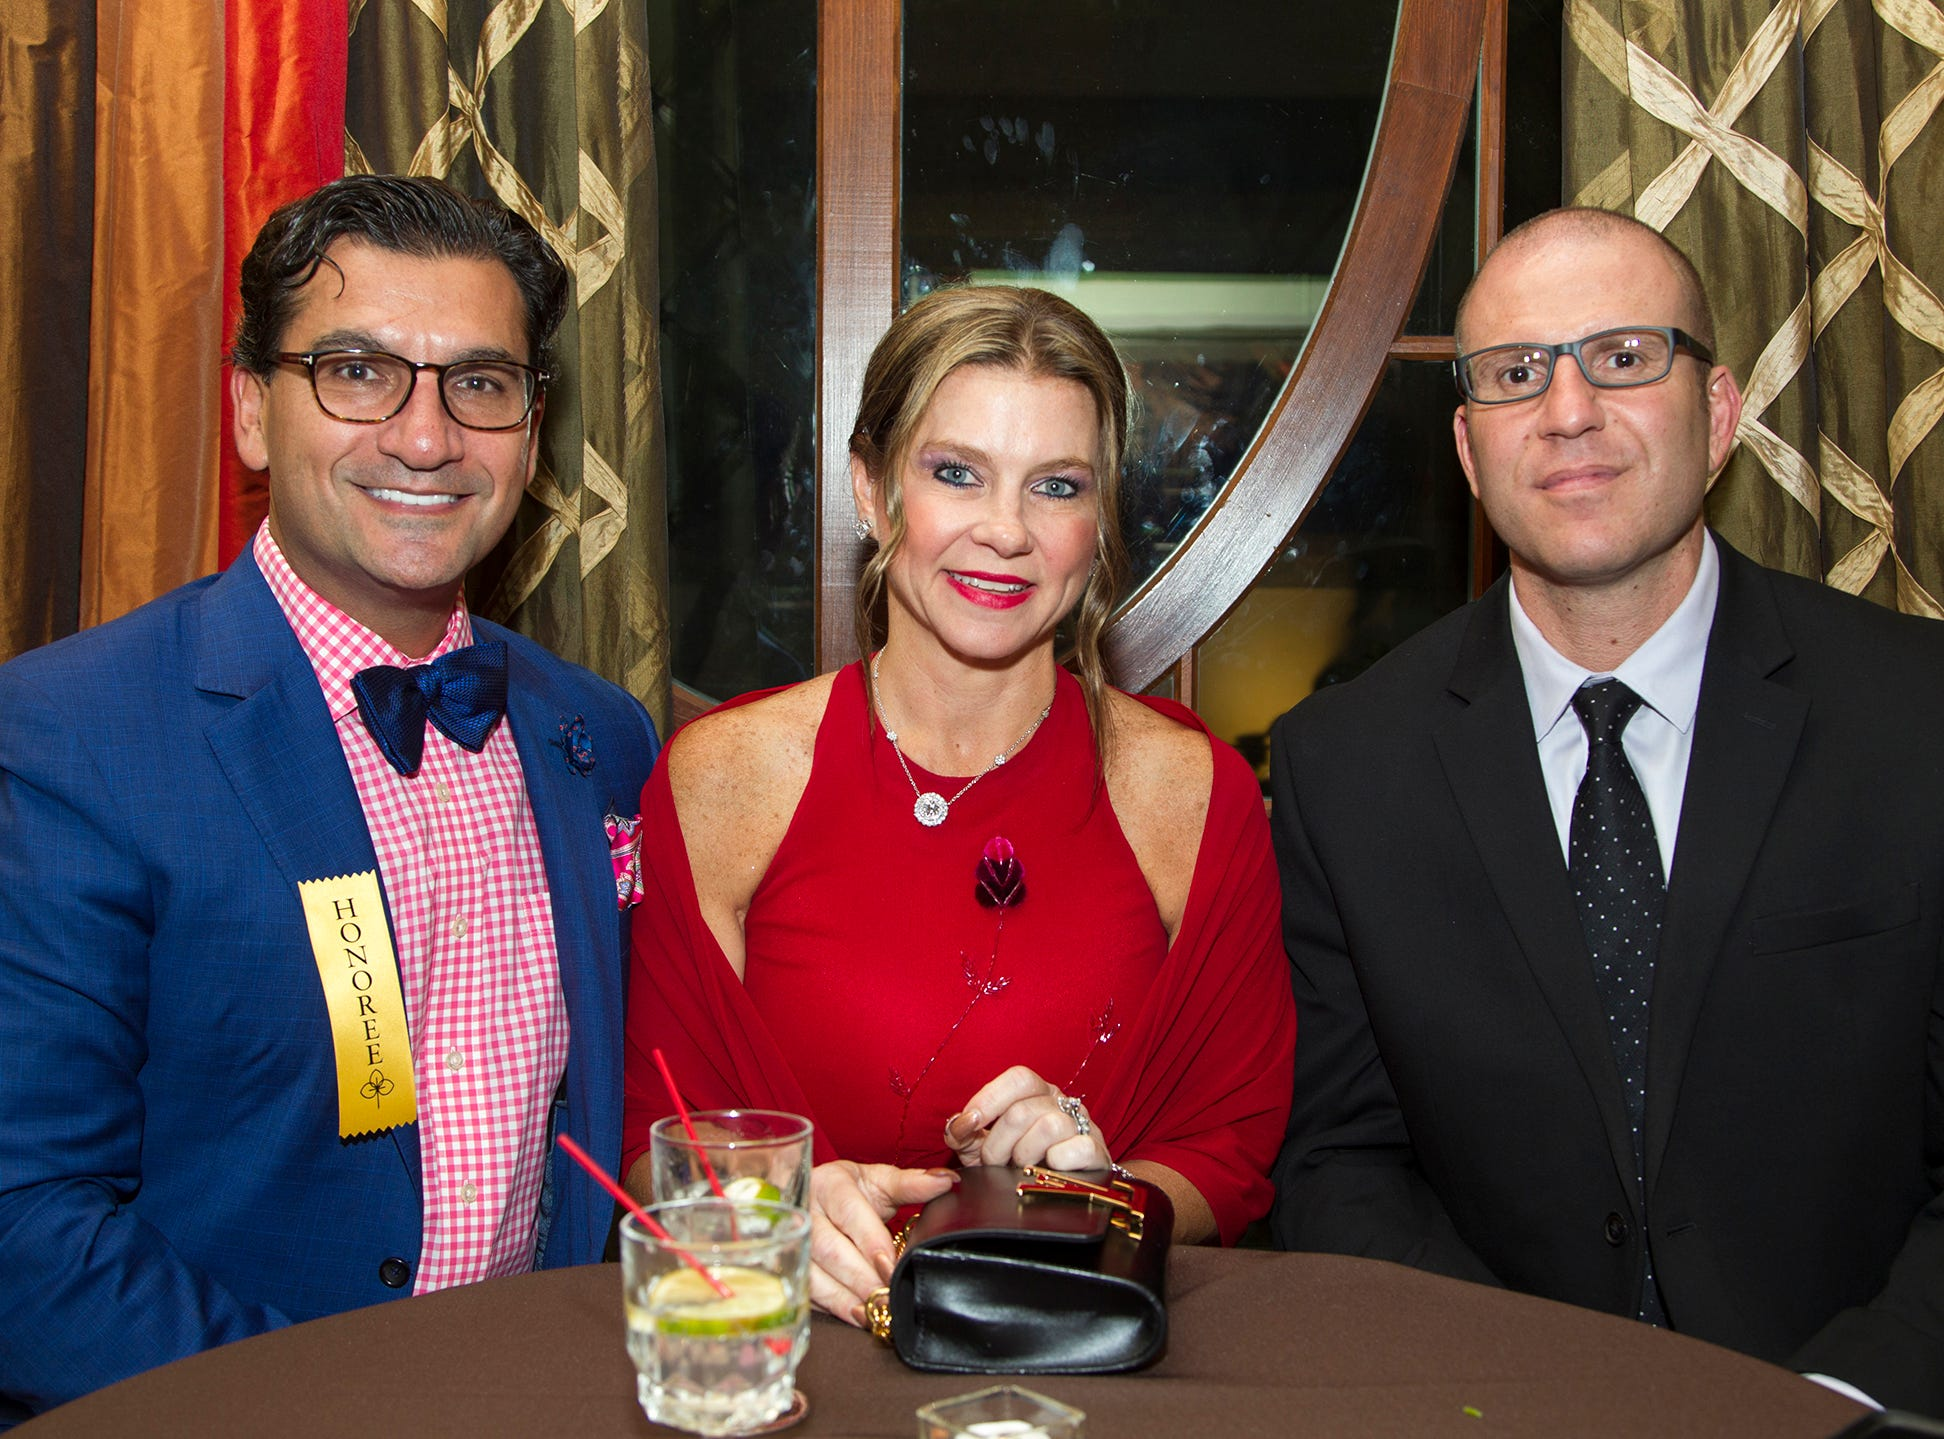 Robert A. Kayal, MD, Kim Kayal, Leon Colao. Christian Health Care Center held its ' A Celebration of Excellence' gala at the Venetian in Garfield.  10/17/2018